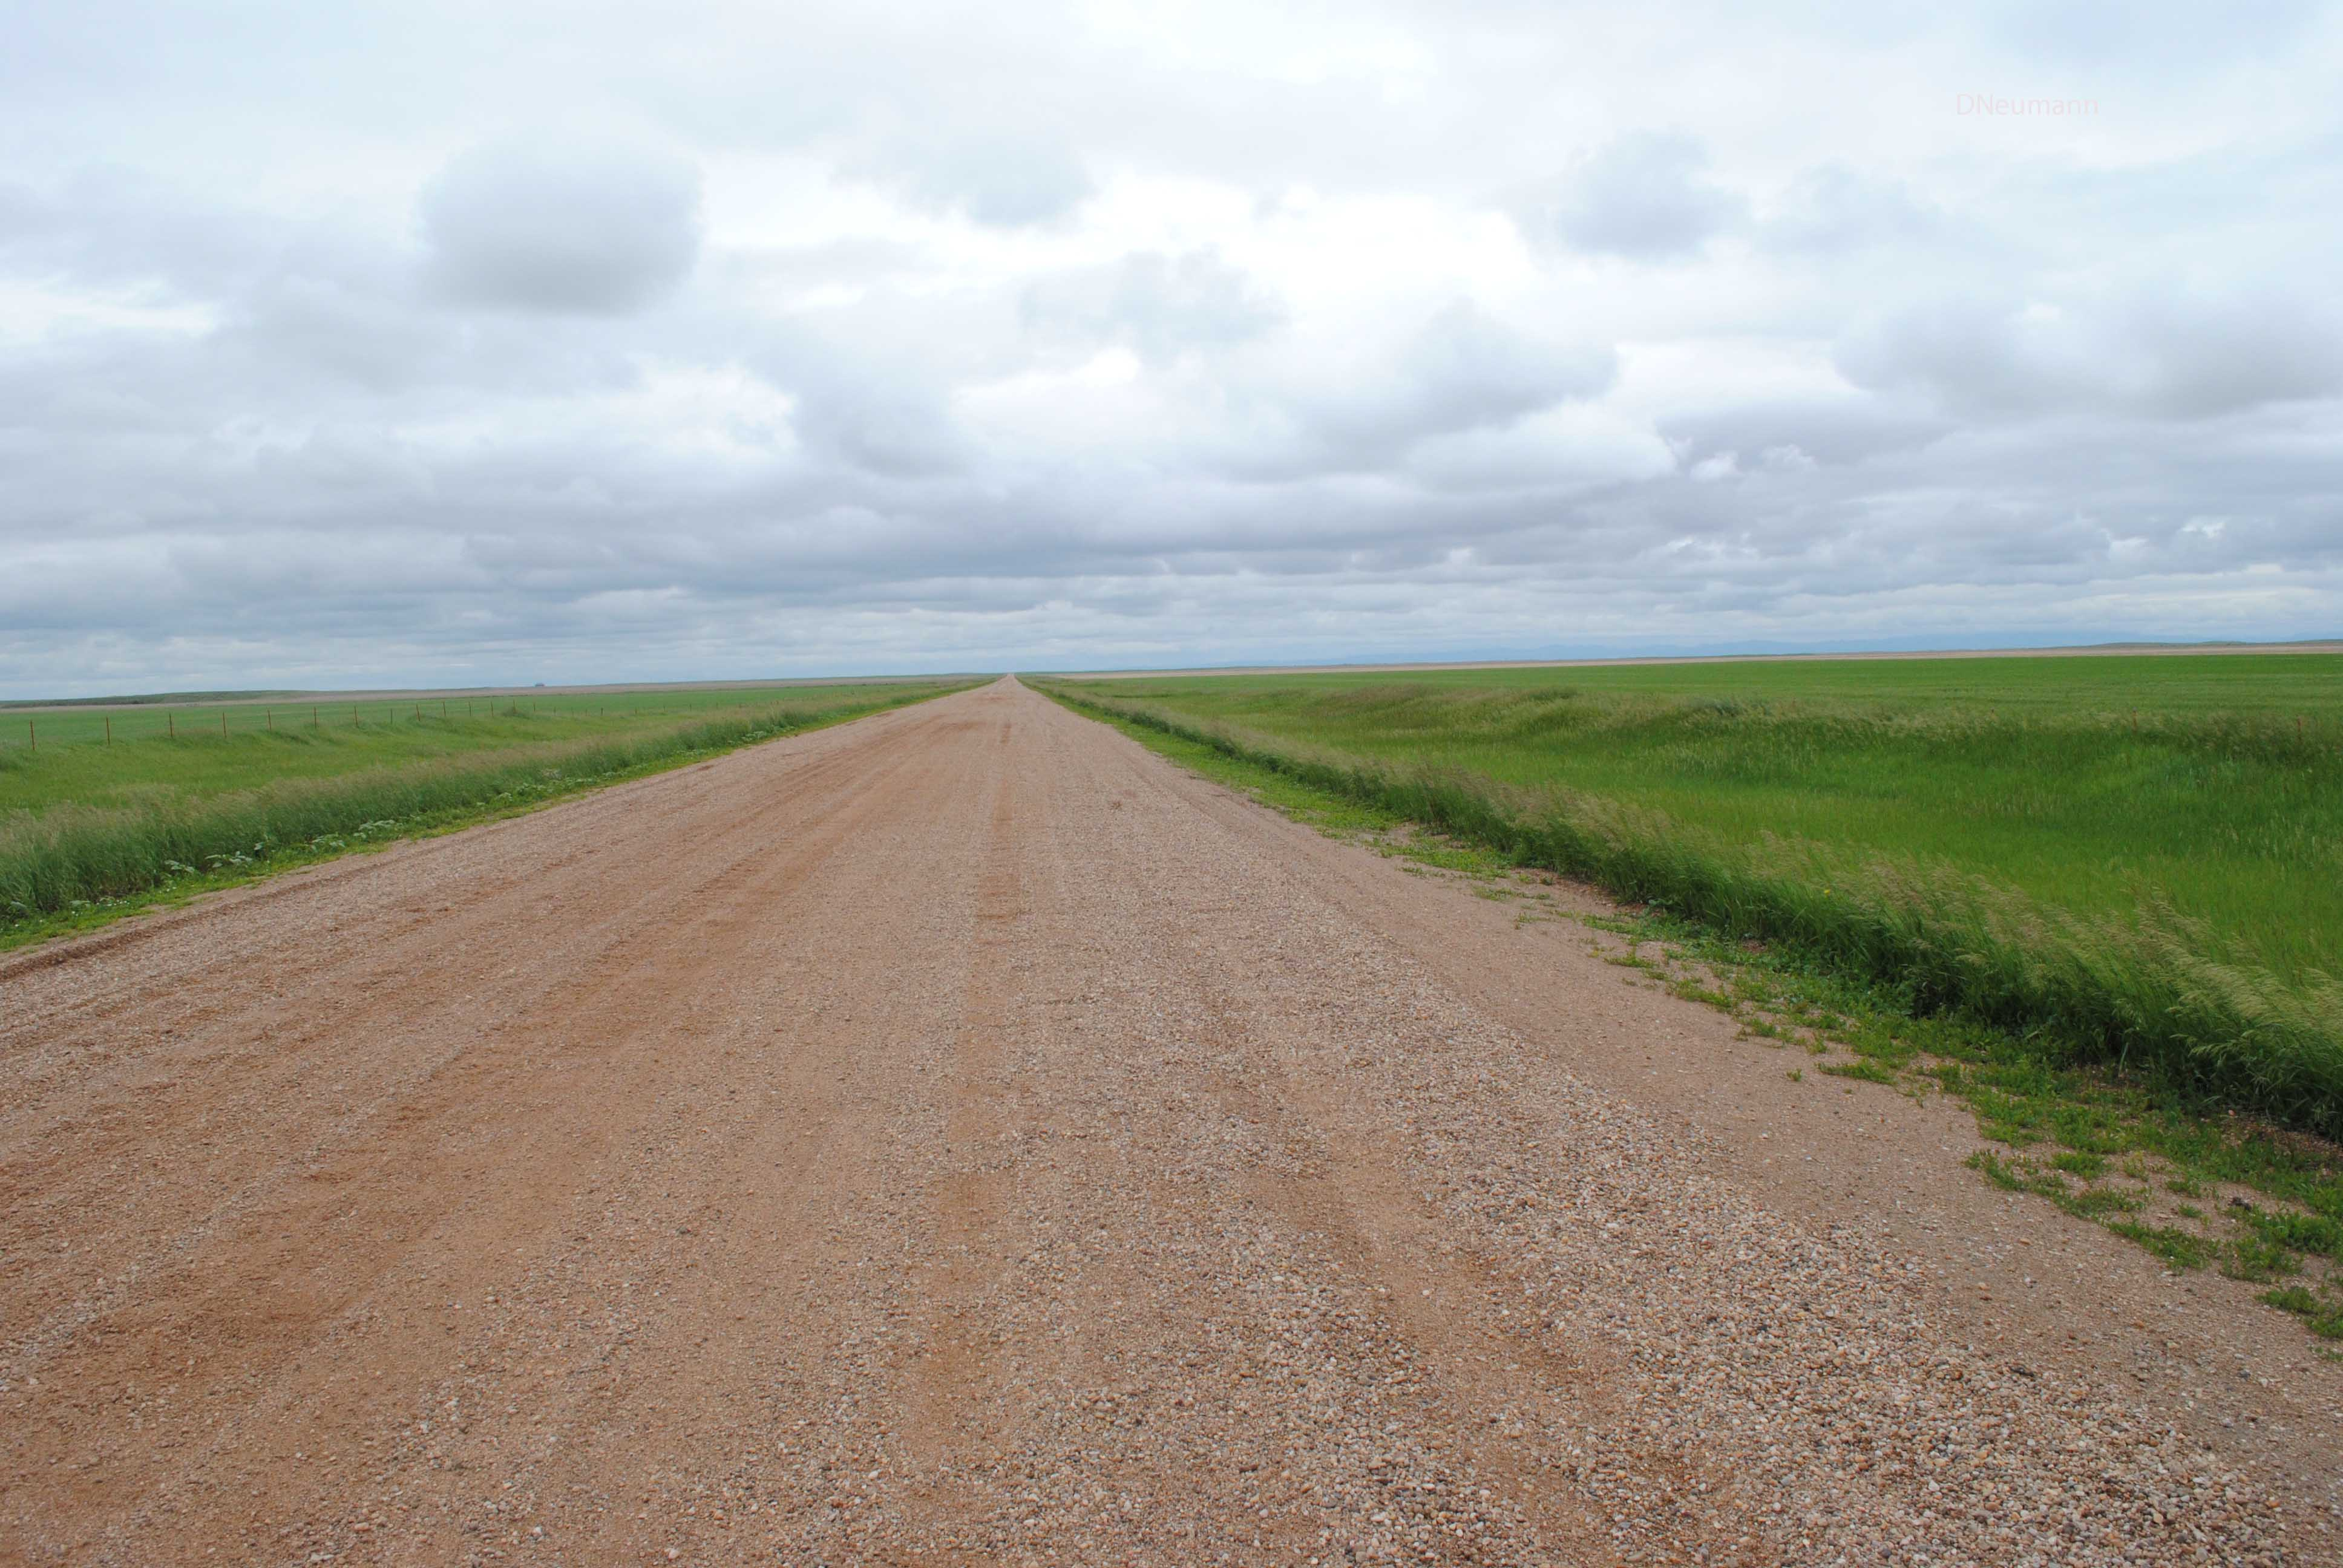 Gas Stations Around Me >> The Longest Dirt Road In the World | aroundustyroads